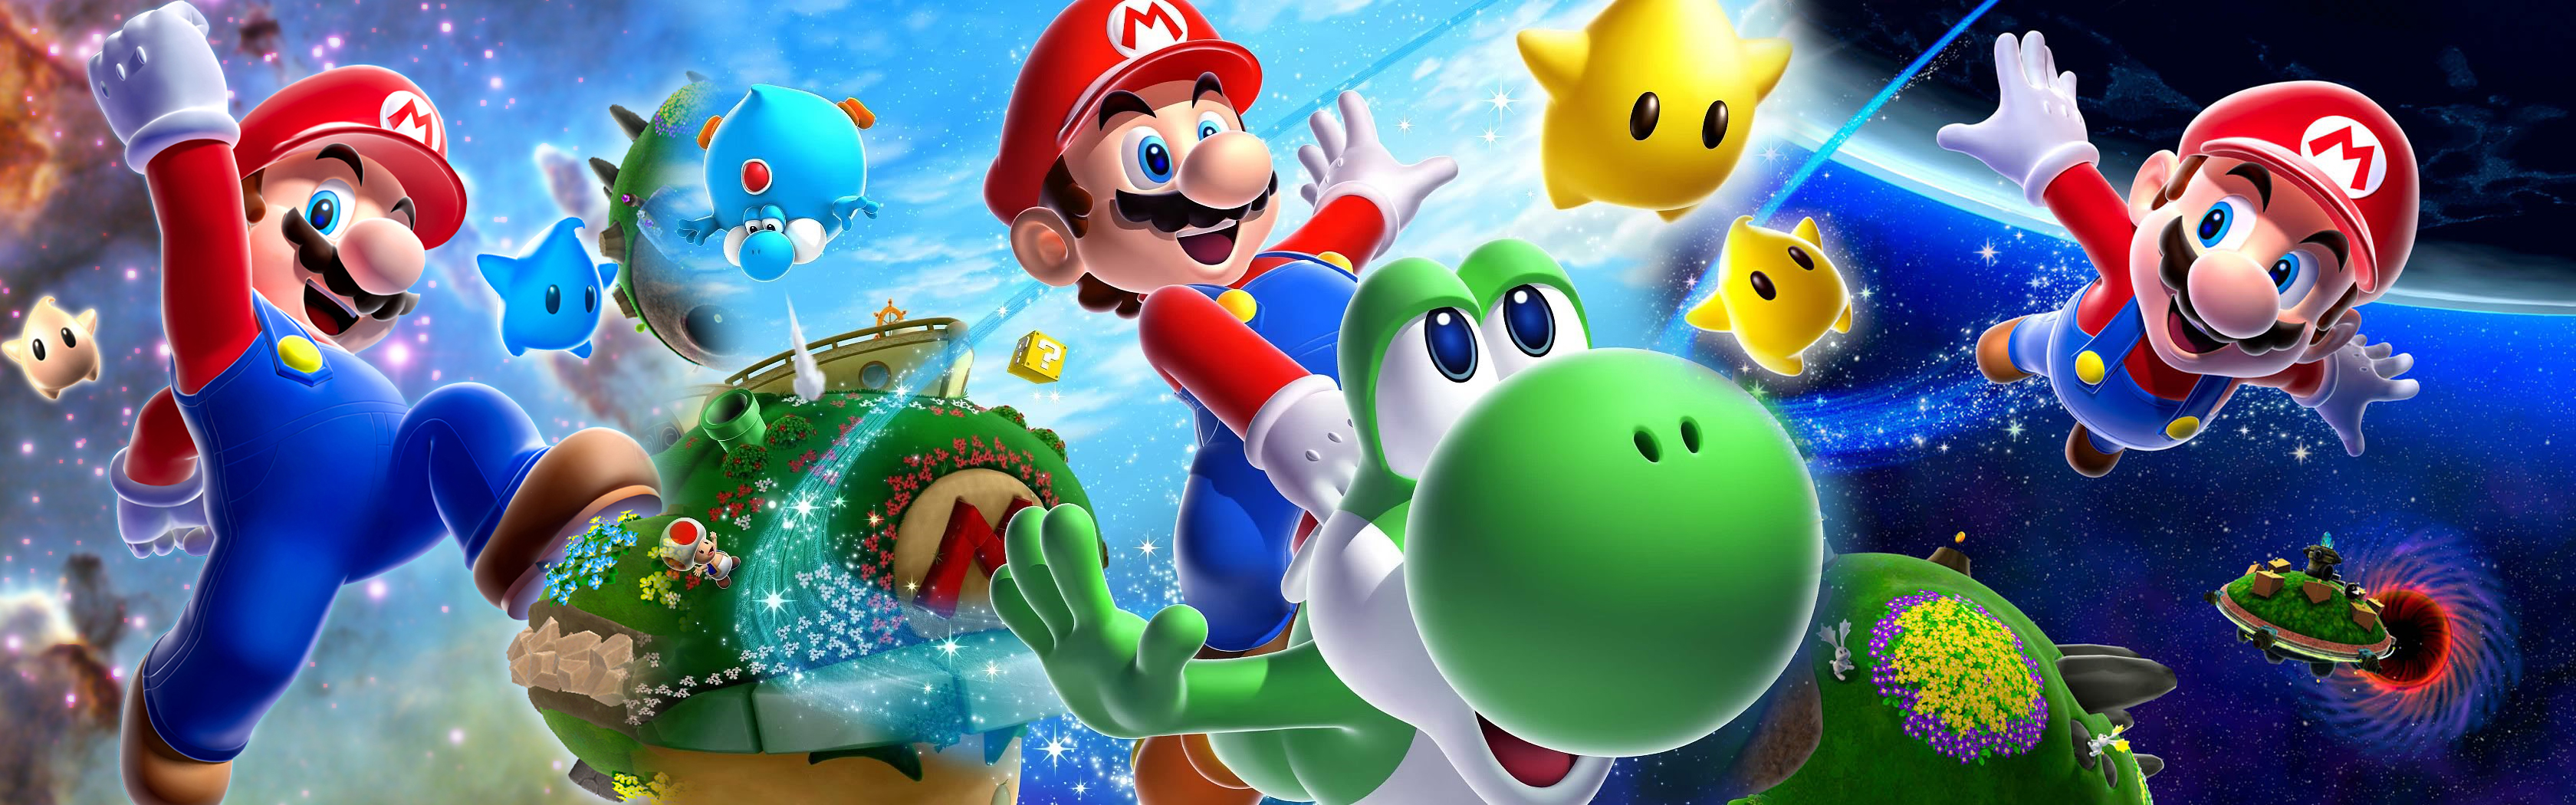 Super Mario Galaxy 2 Wallpaper by Toxigyn